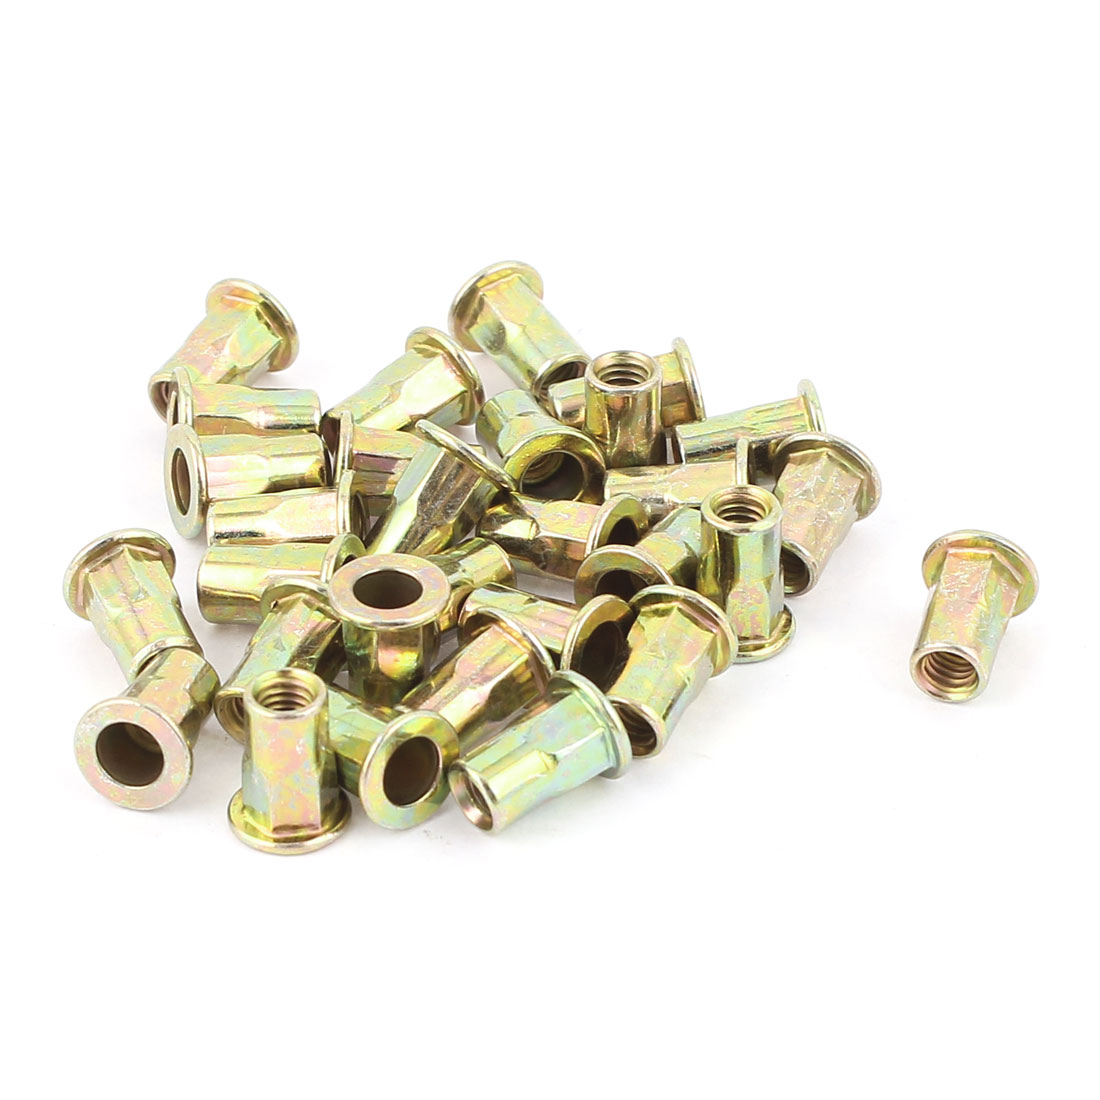 4mmx10.5mm Flat Head Metal Rivet Nut Insert Nutsert Gold Tone 30Pcs